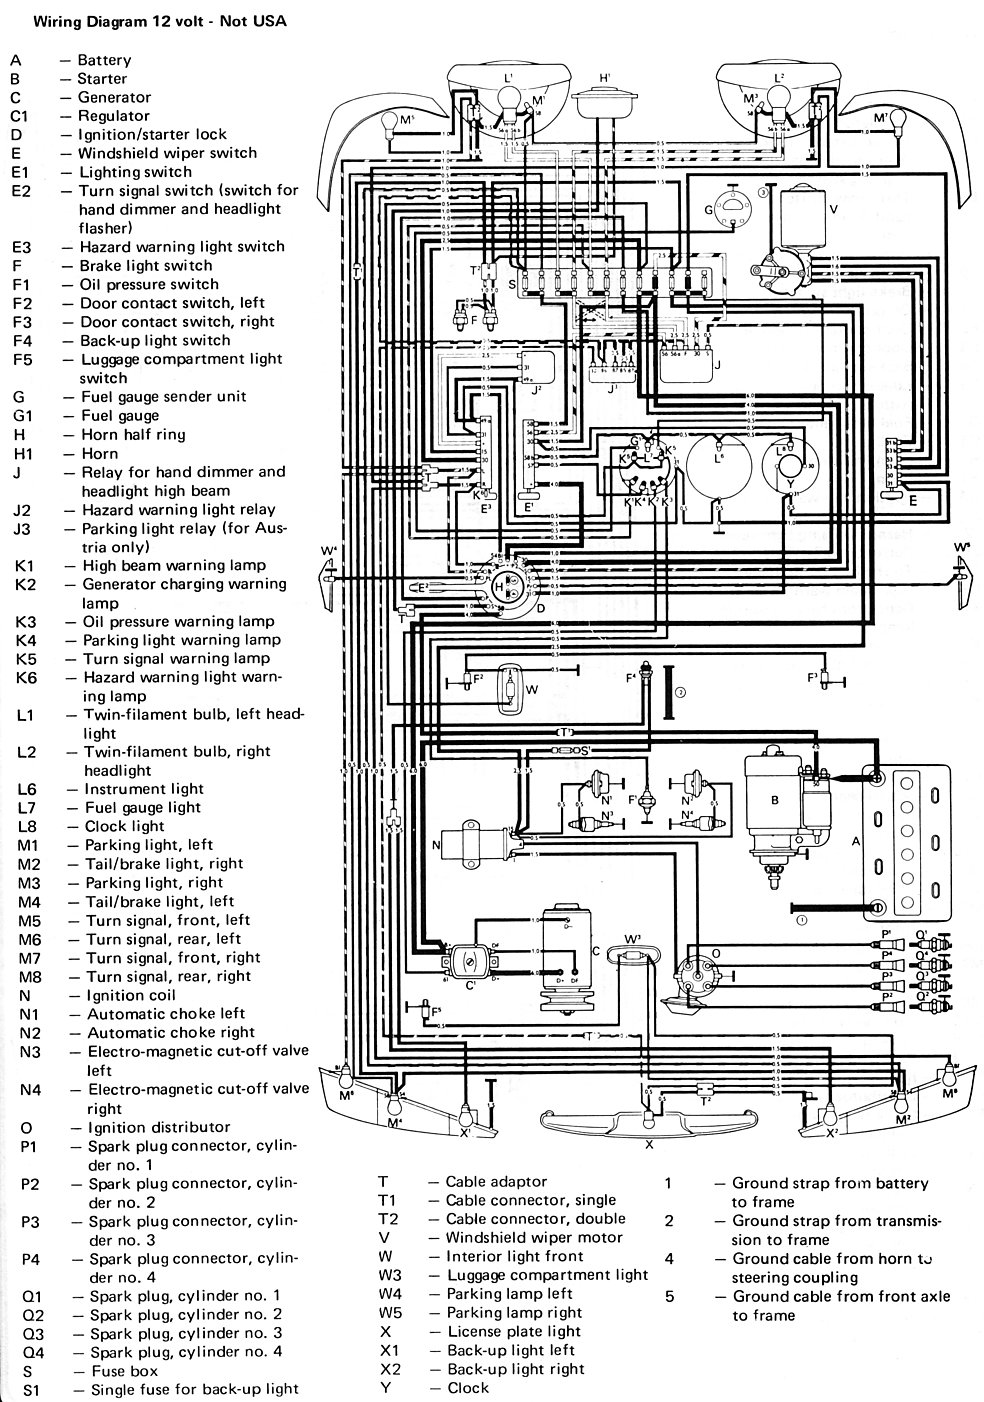 1976 Chevy Air Conditioning Diagram Wiring Schematic